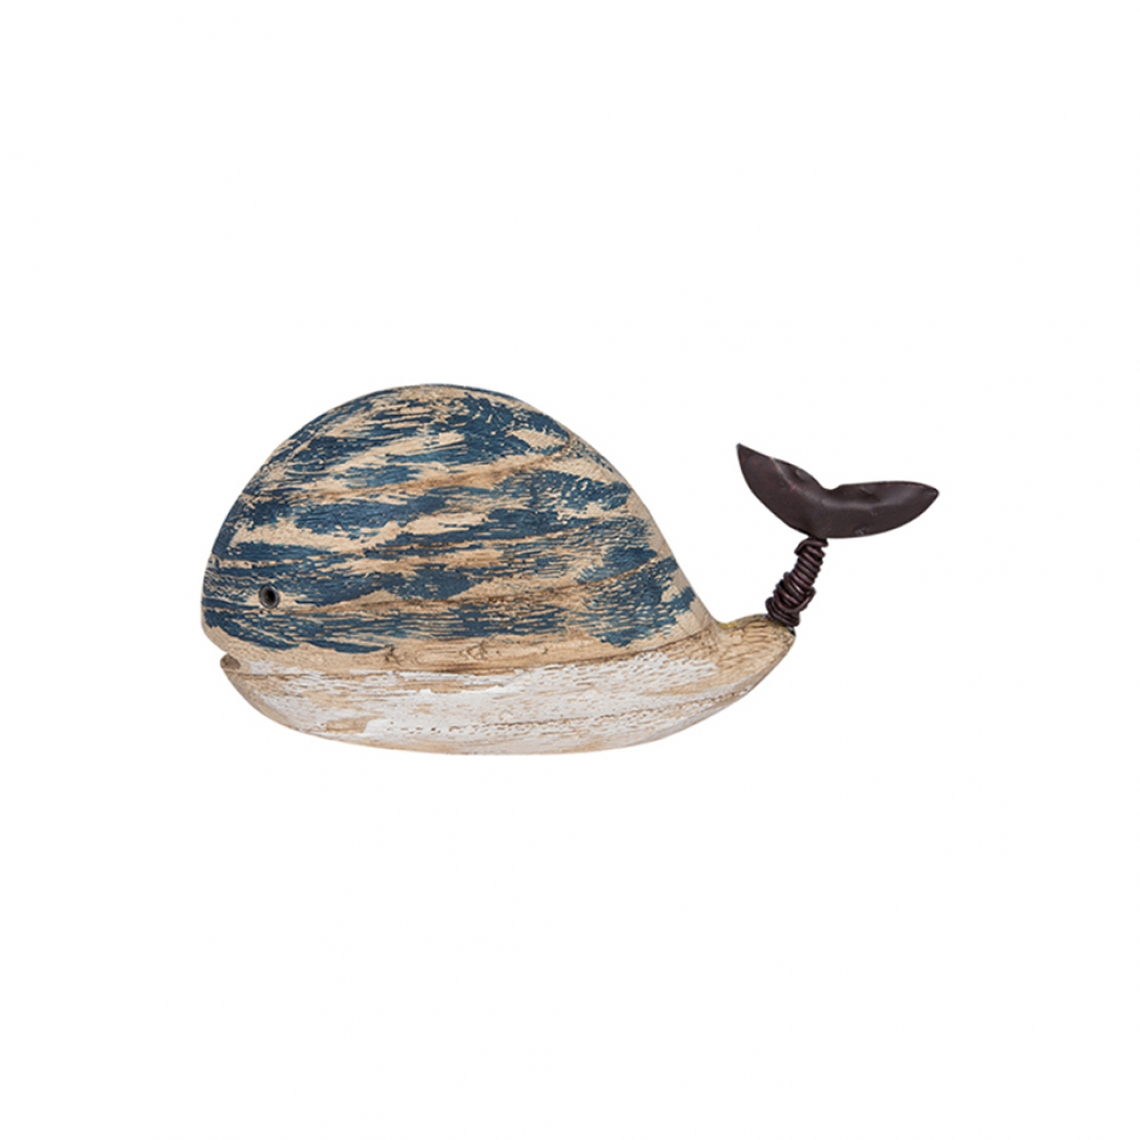 Wooden whale